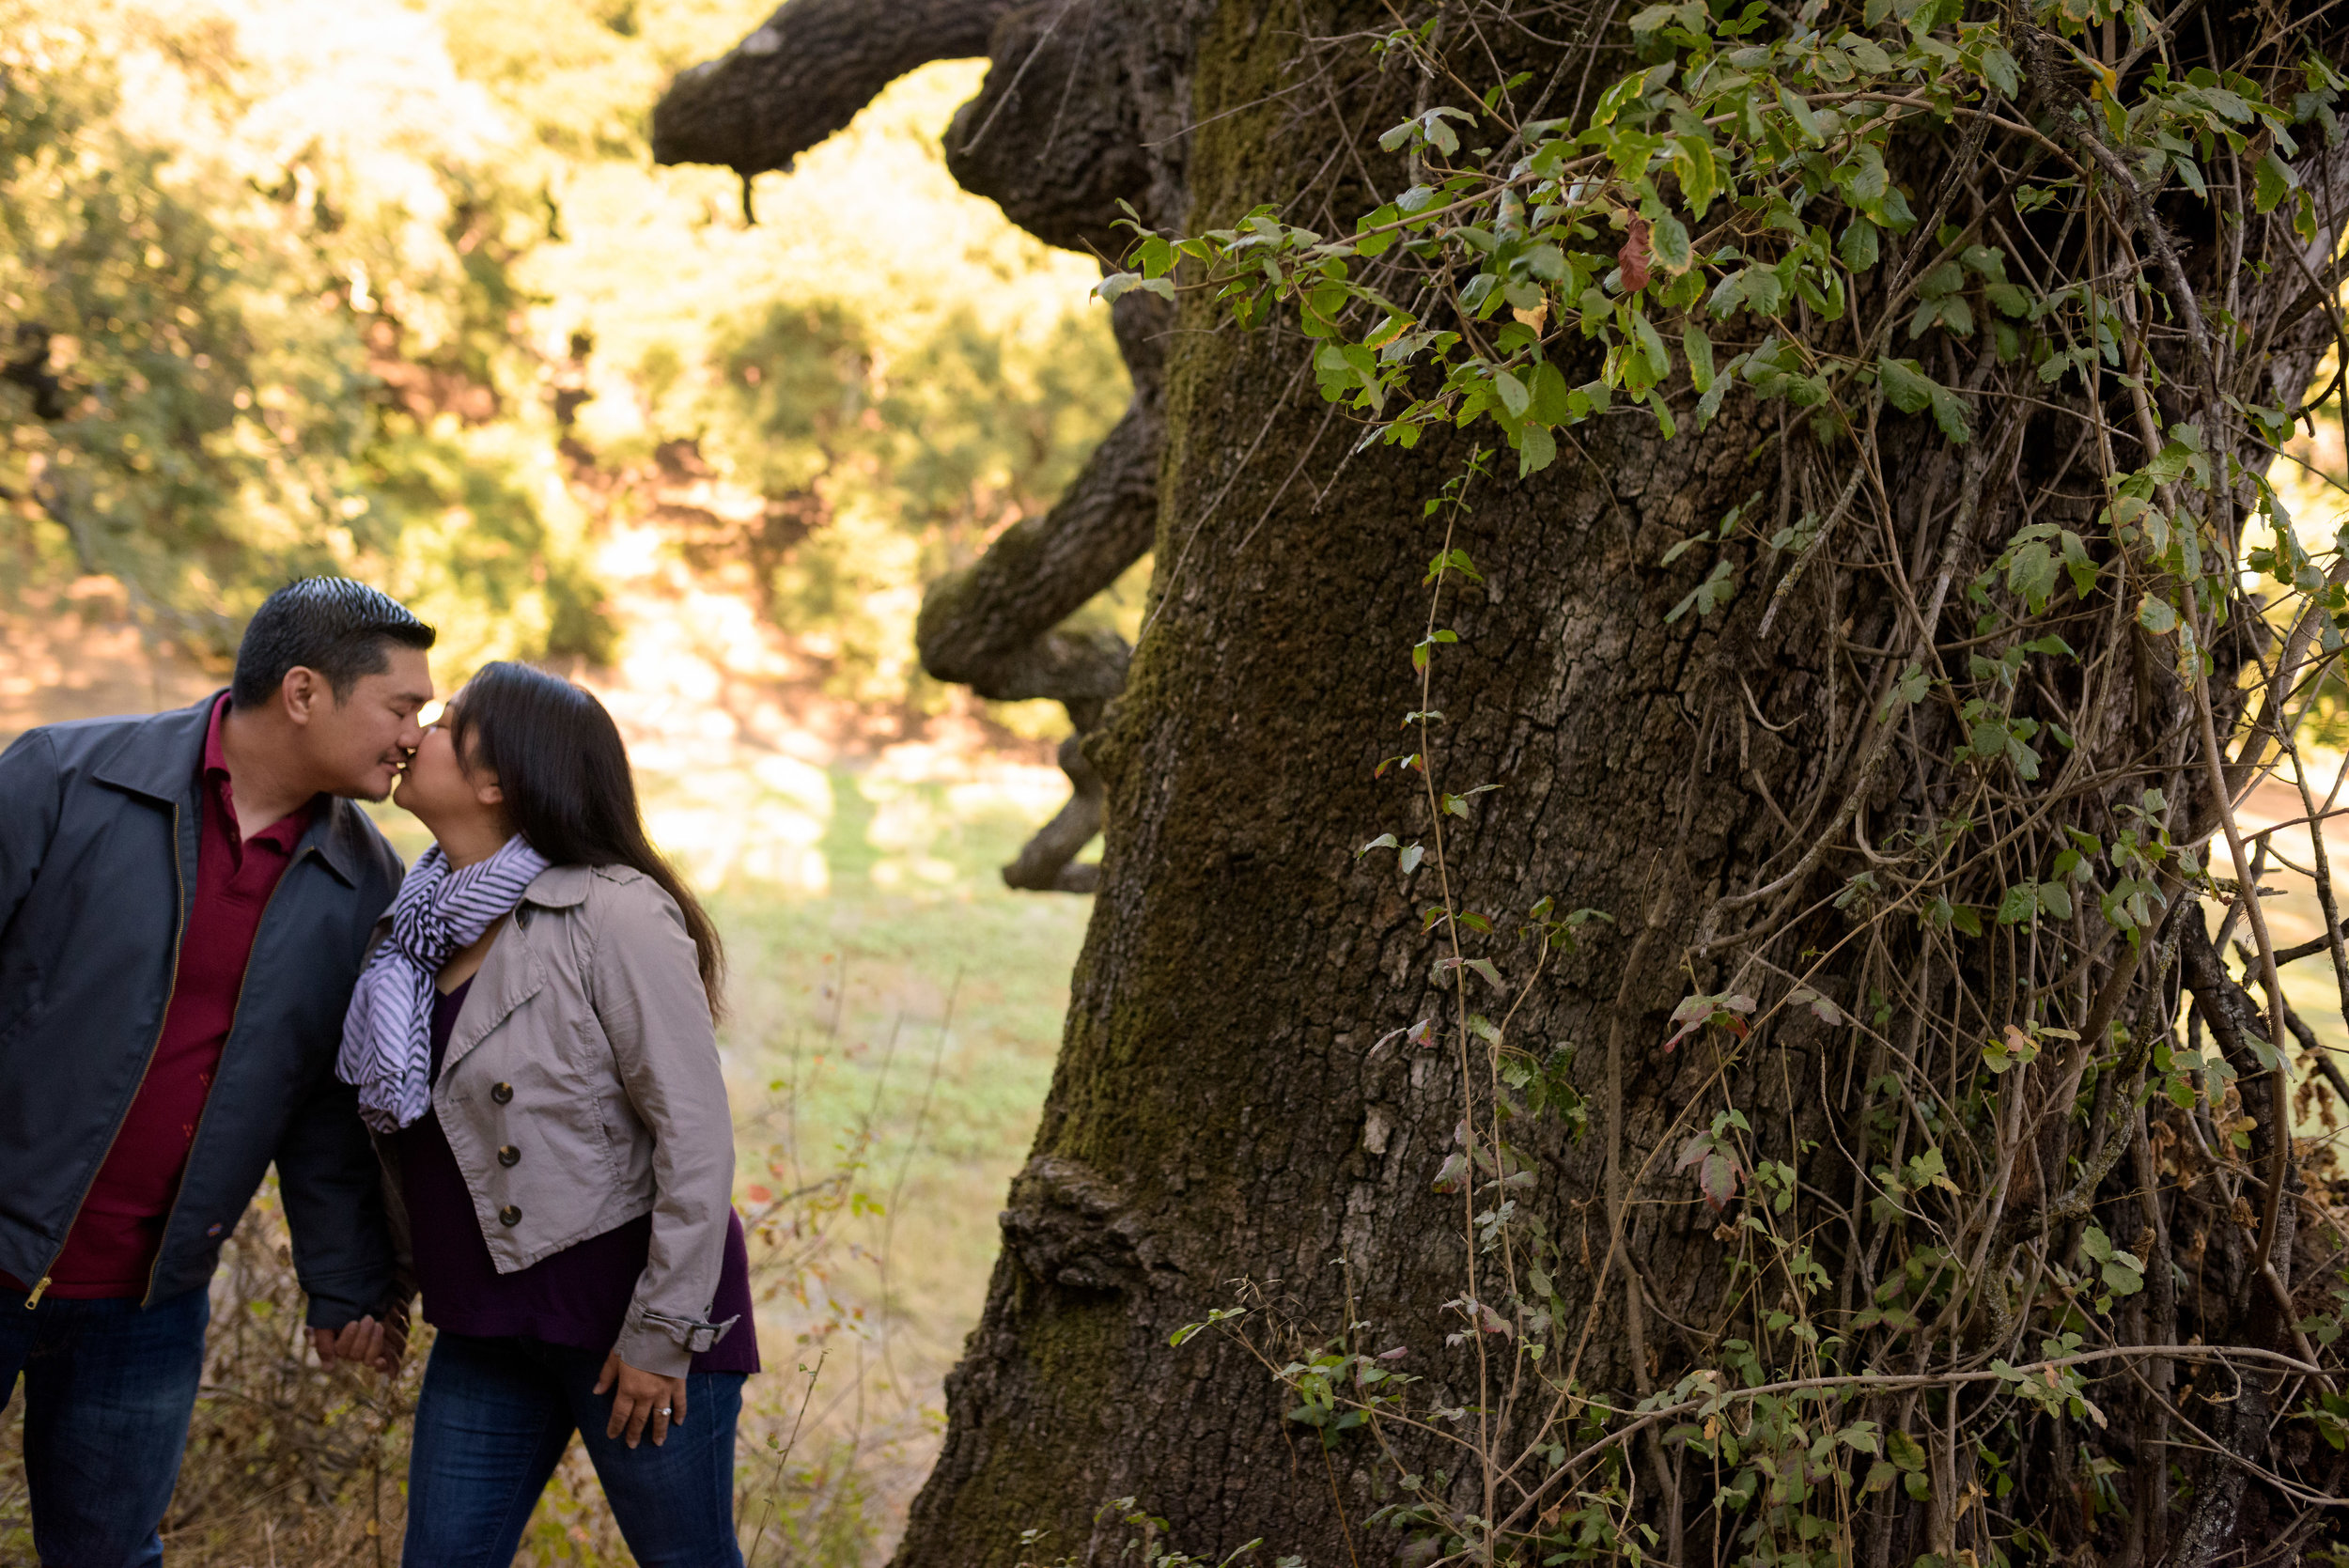 Pichetti Ranch Cupertino Engagement Photos - Photos by Bay Area wedding photographer Chris Schmauch